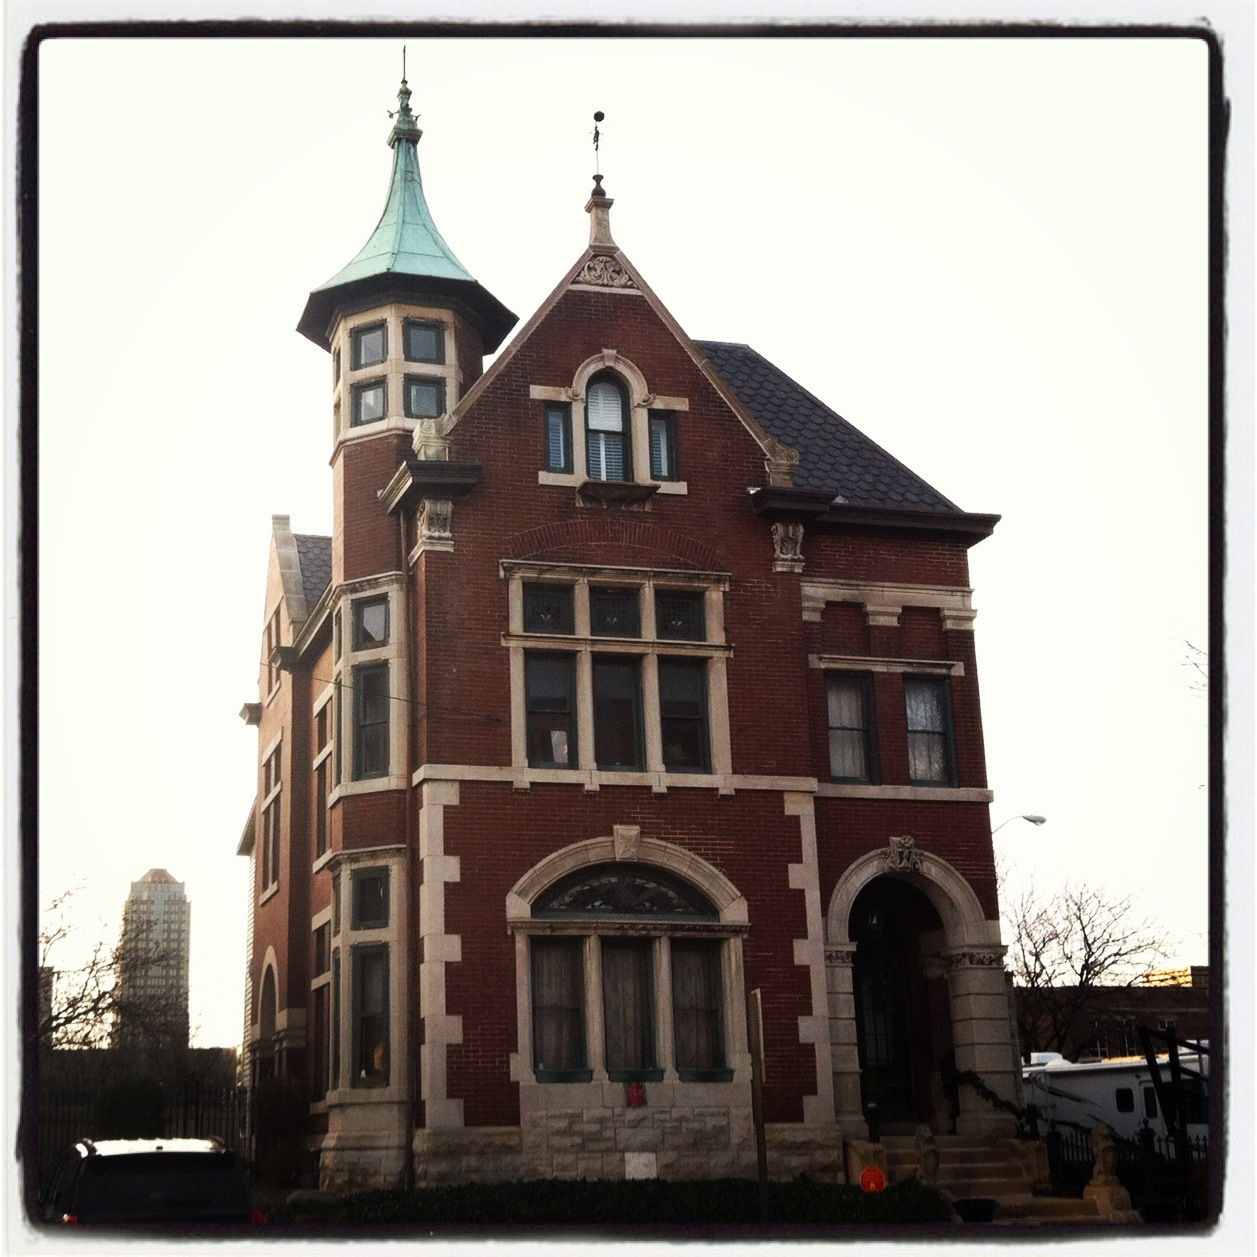 Friday Favorite: East Street, Willis-Tate House